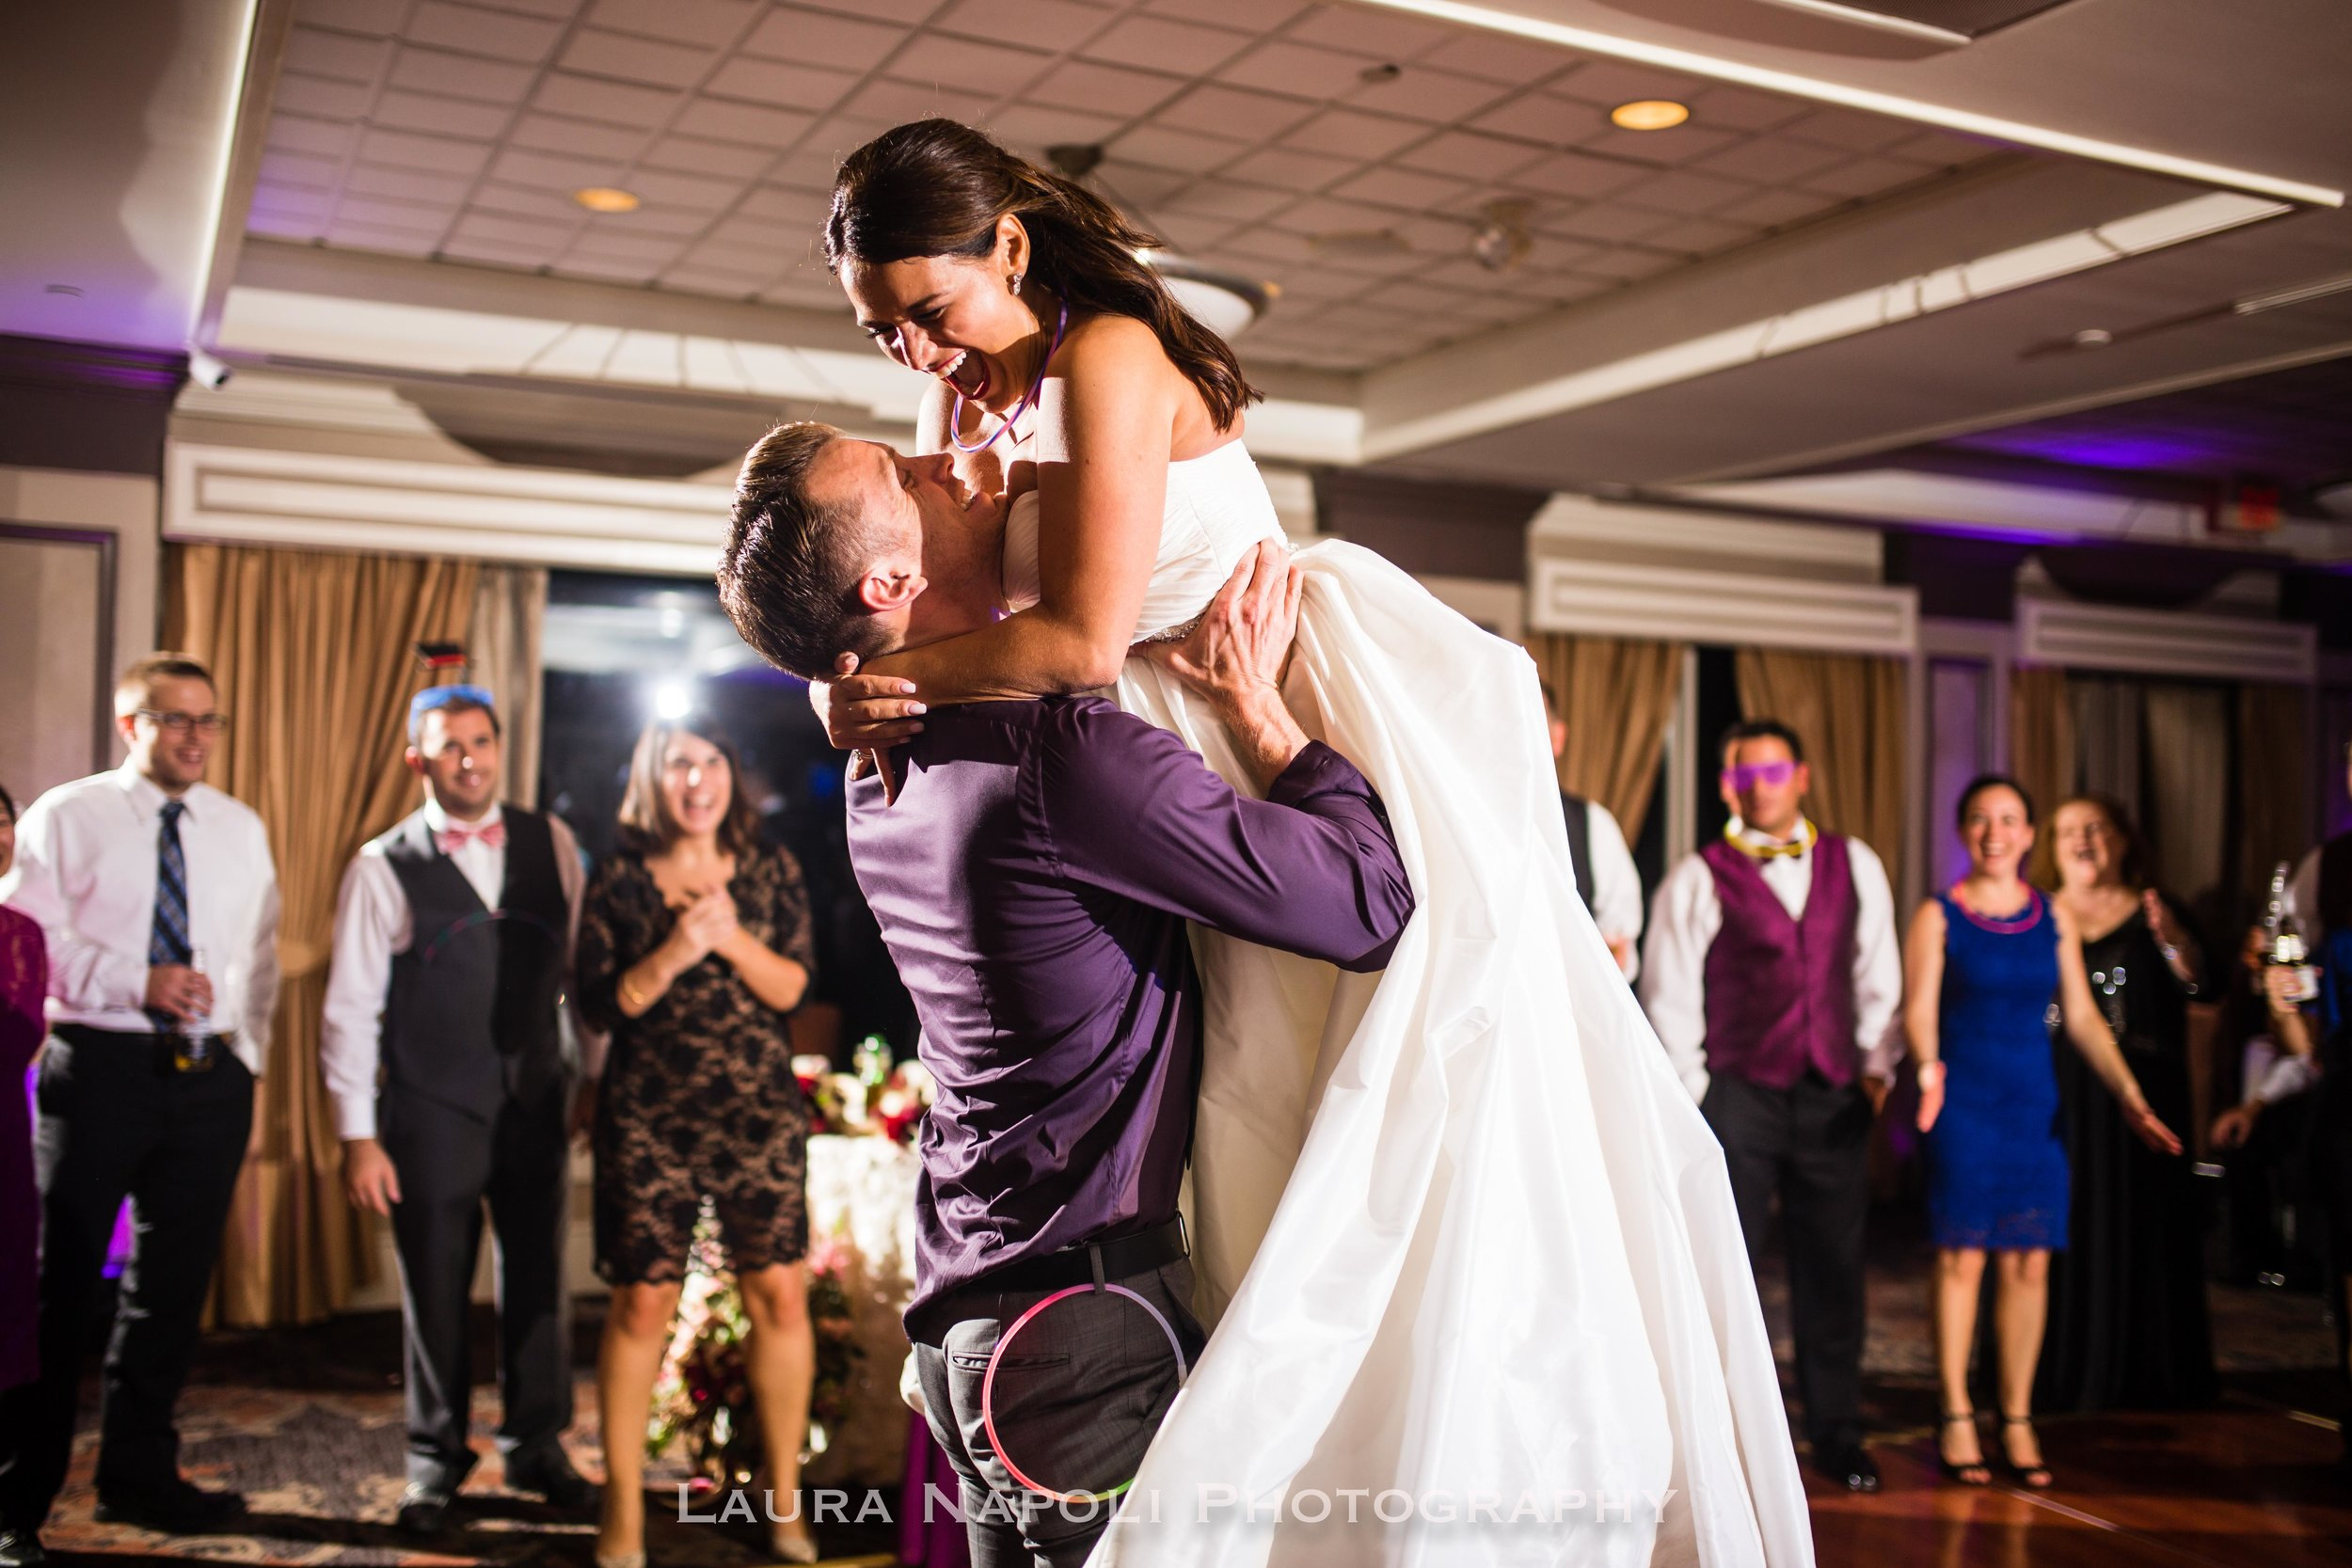 ScotlandRunWilliamstownNJWeddingvenue-18.jpg